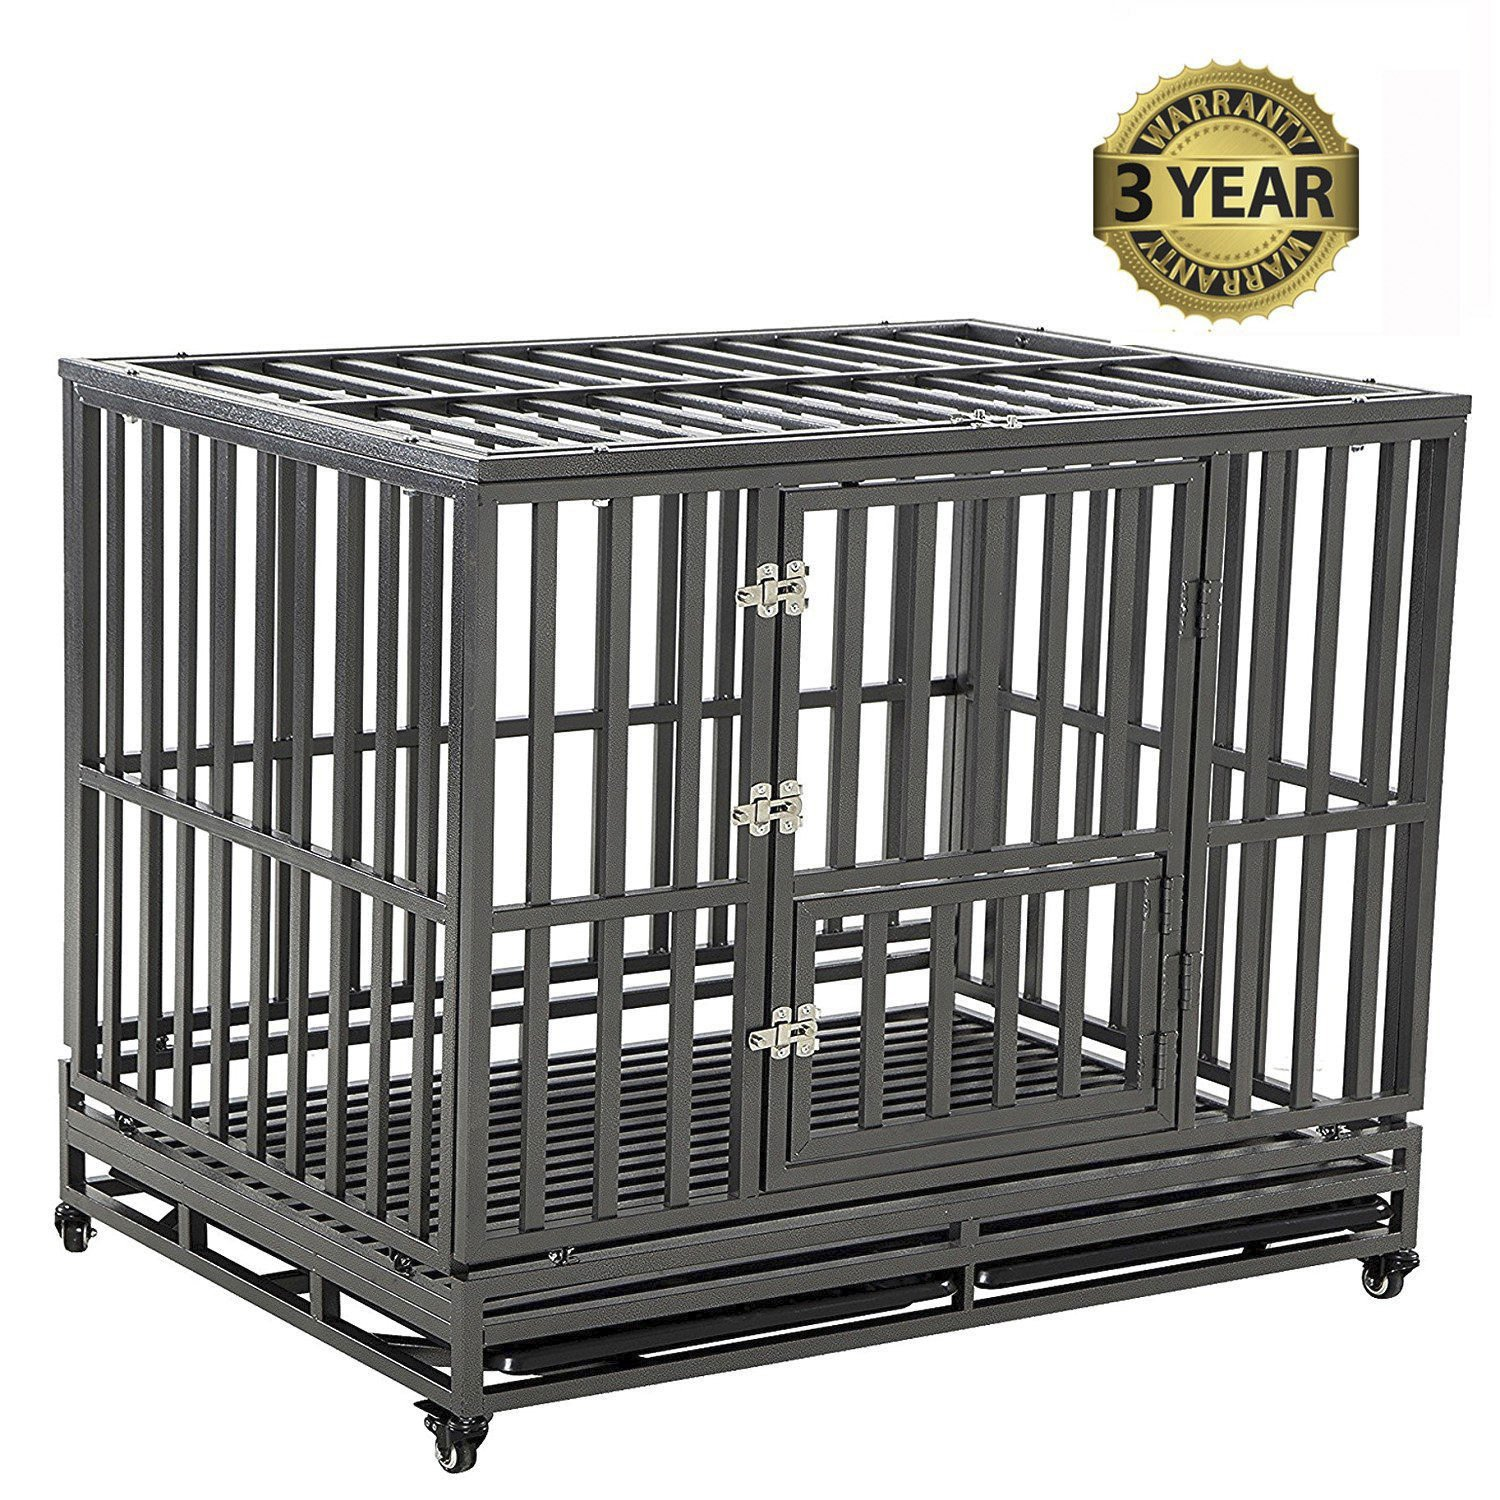 LUCKUP Heavy Duty Dog Cage Strong Metal Kennel and Crate for Medium and Large Dogs, Pet Playpen with Four Wheels,Easy to Install,42 inch,Black by LUCKUP